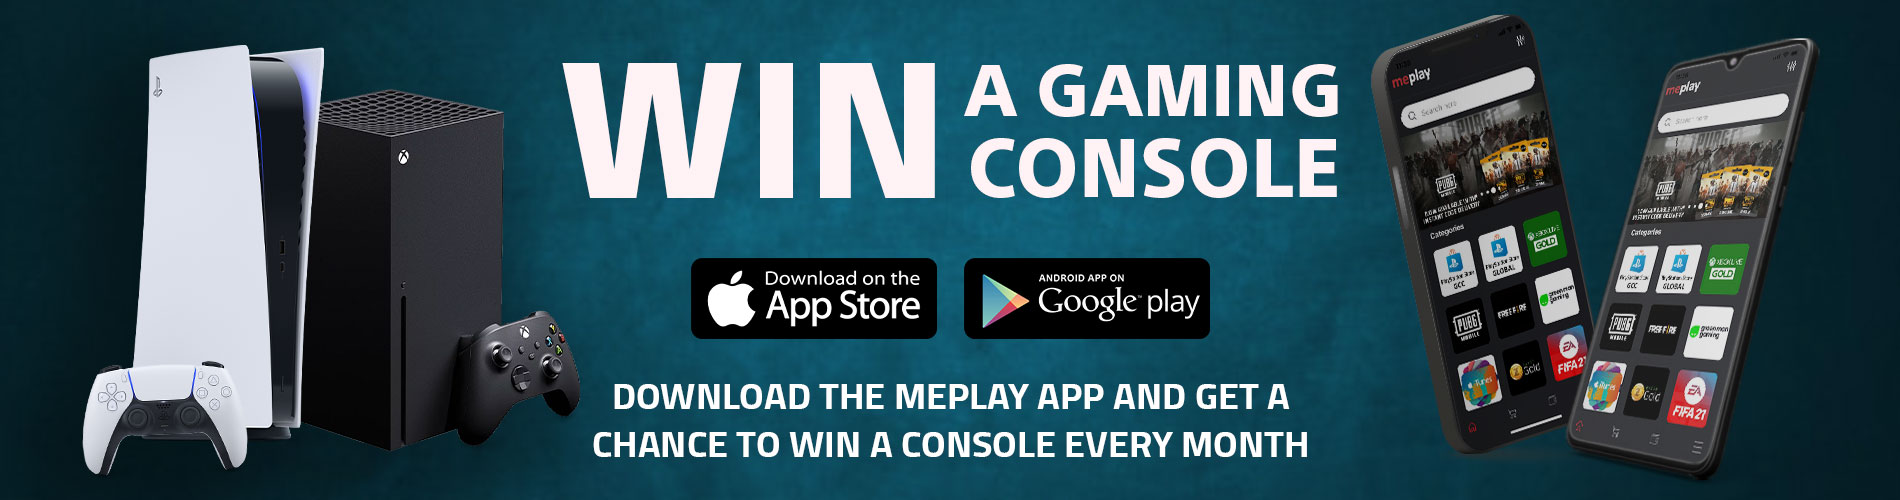 download meplay app